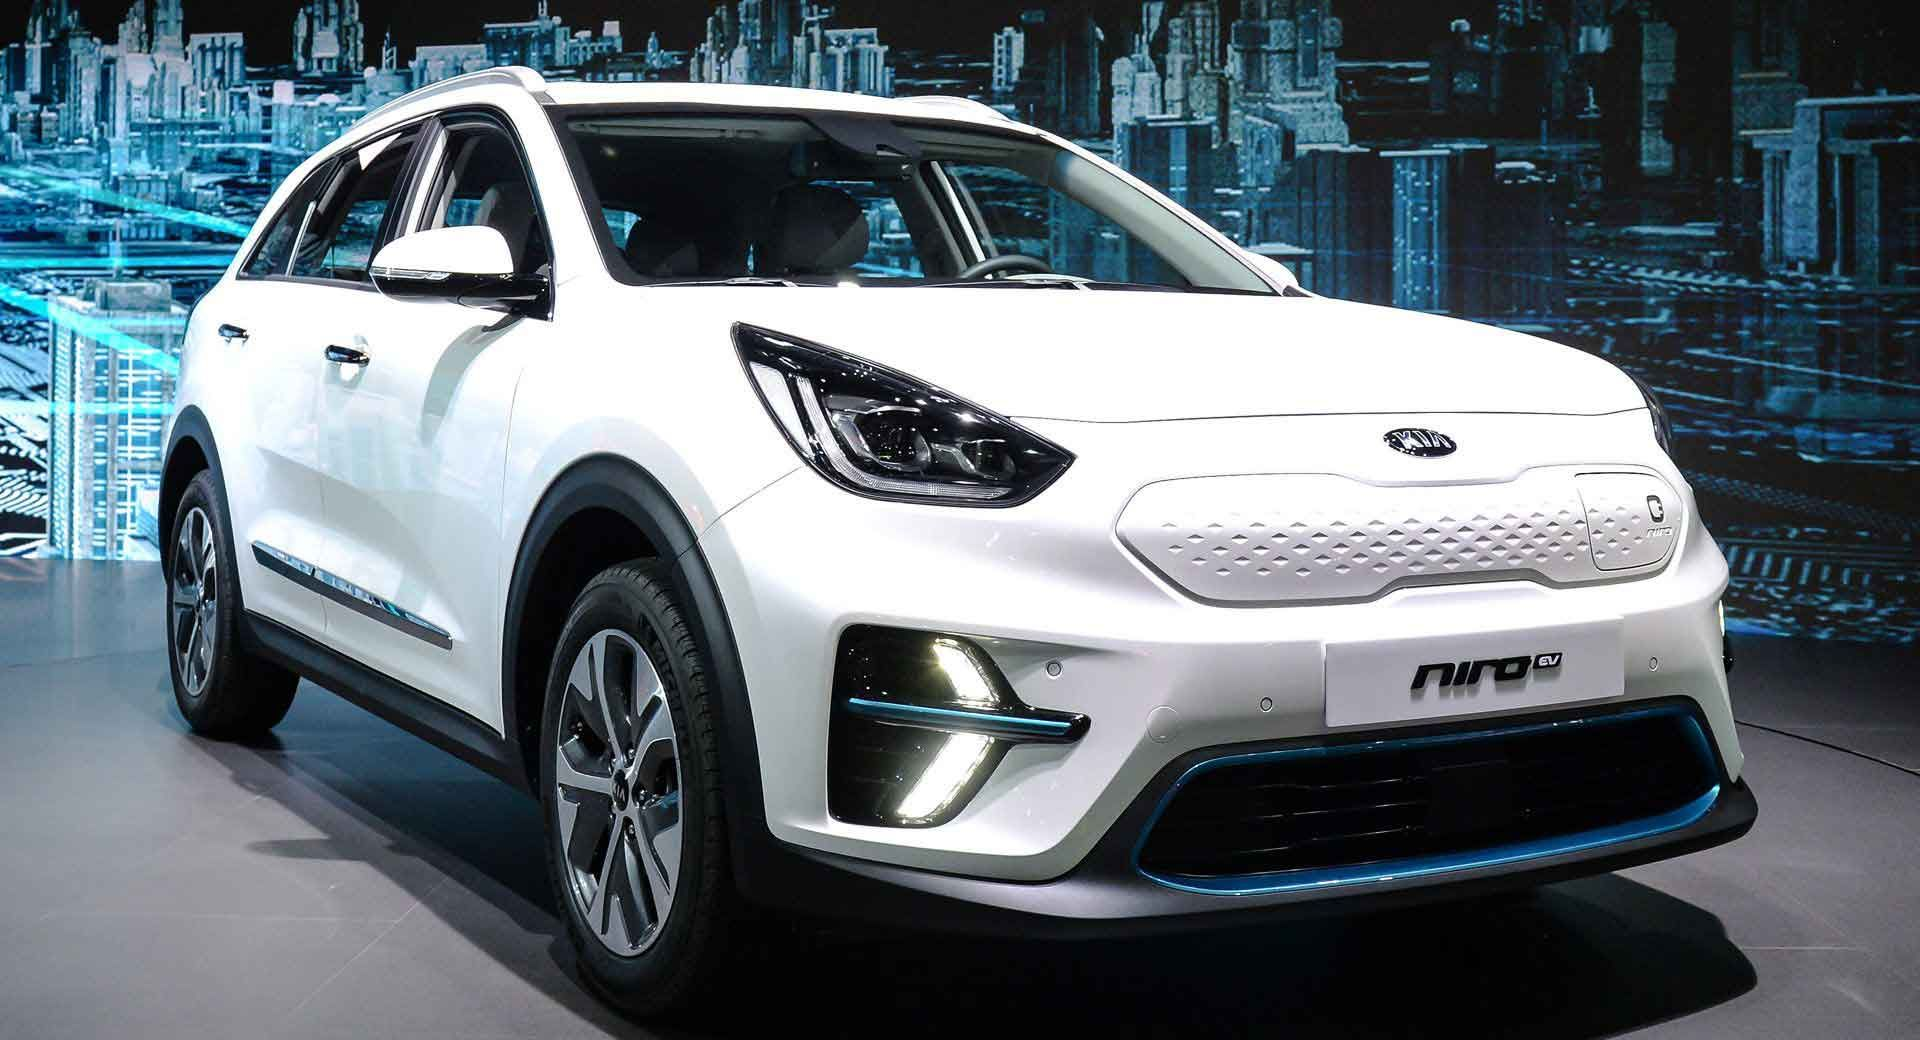 18 Cheapest Electric Car Australia For High To Low Prices Pictures